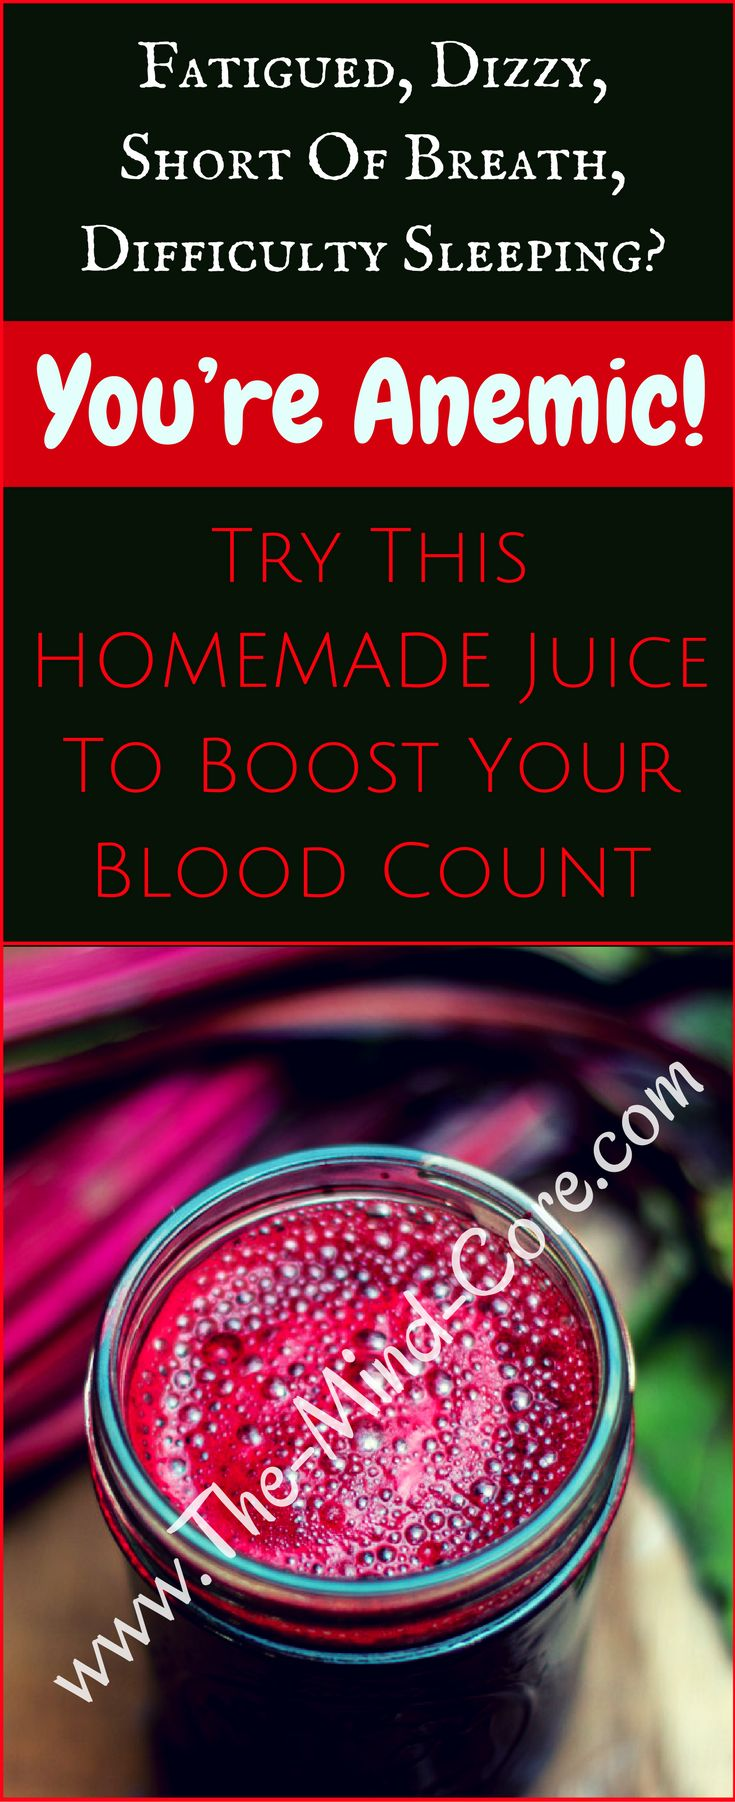 Feeling Fatigued, Dizzy, Short of Breath, Difficulty Sleeping? You're ANEMIC! Drink This Juice Every Day Boost Your Blood Count!